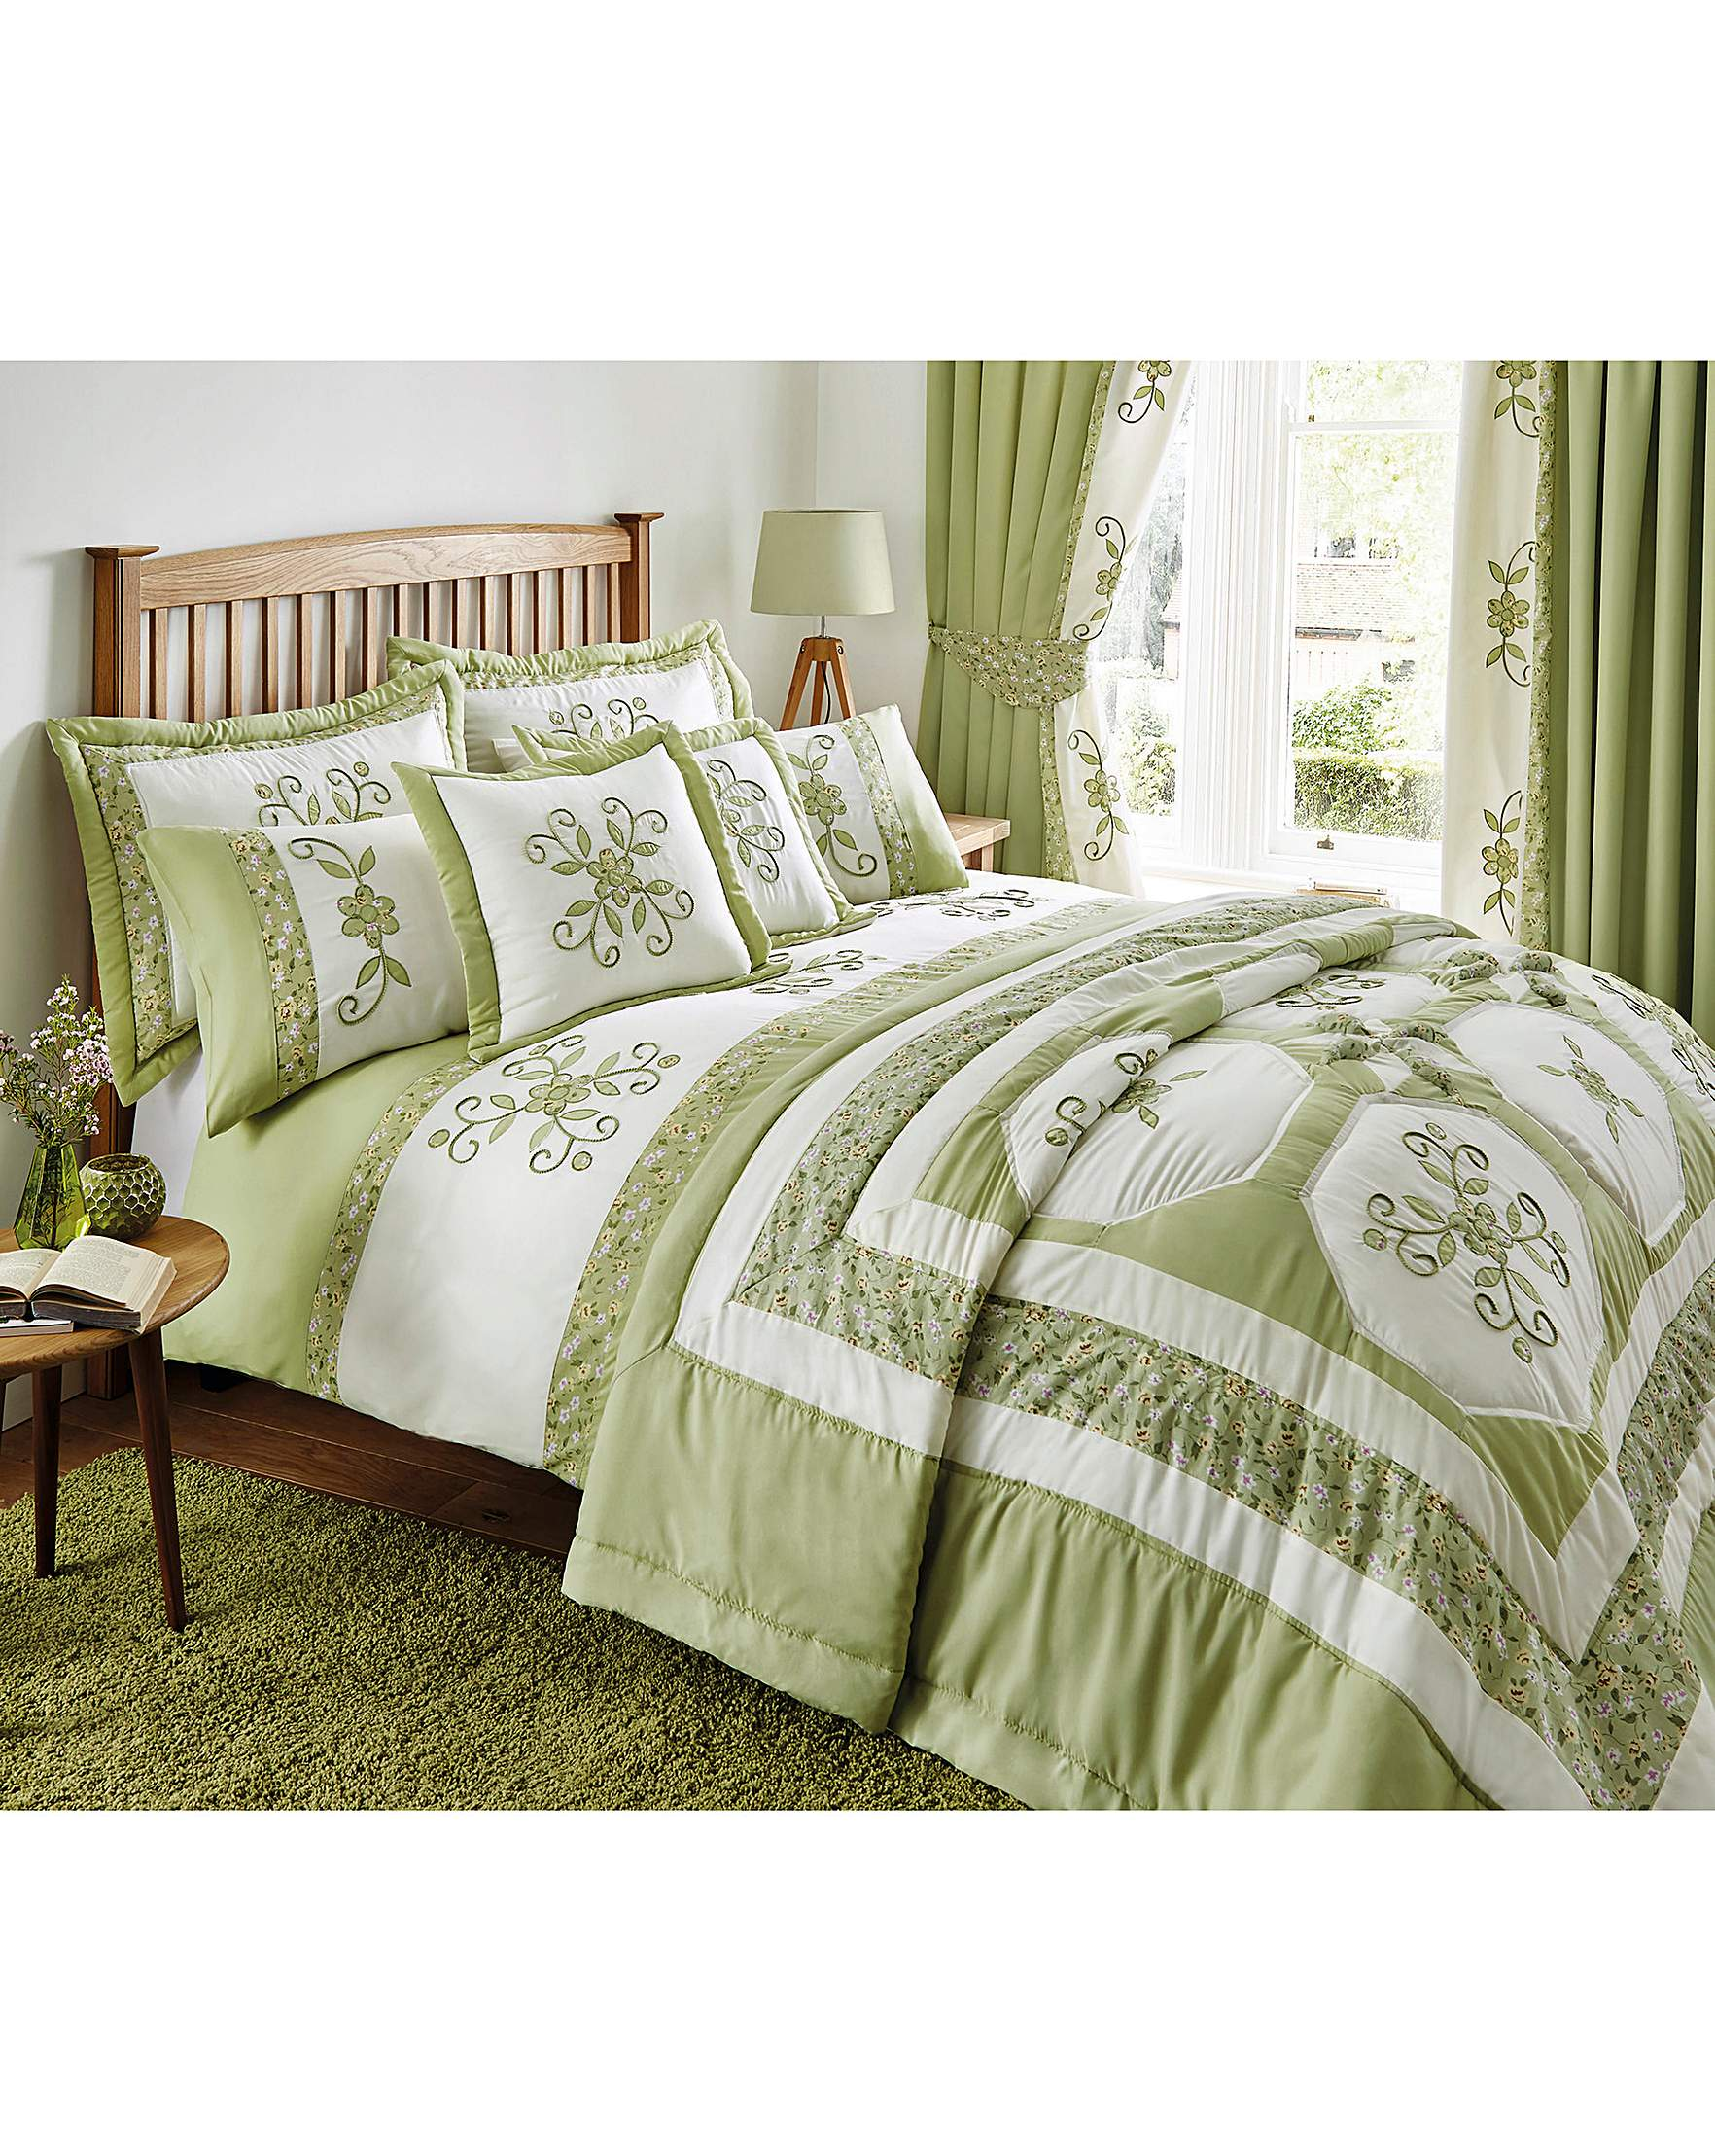 Willow puffball bedspread house of bath